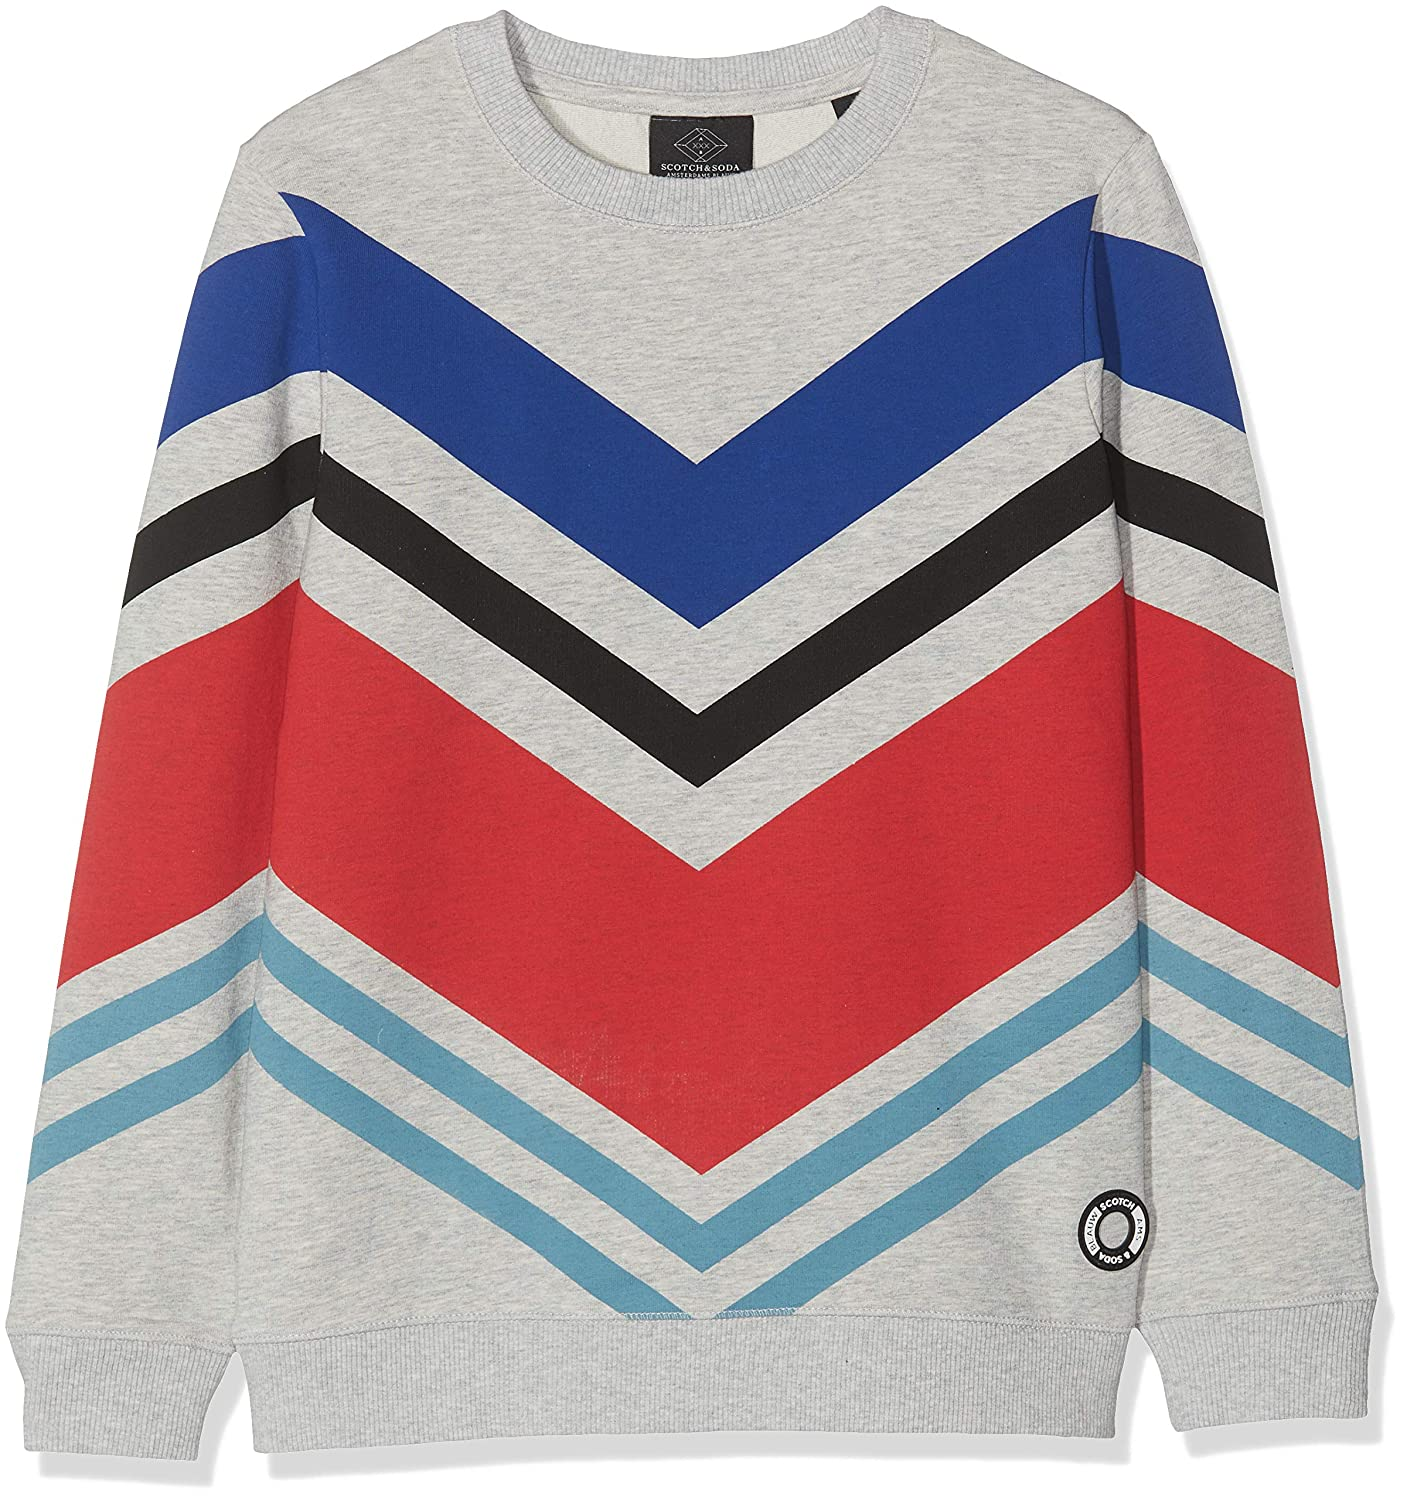 Scotch /& Soda Long Sleeve Tee in Light Weight Felpa with Big Flag Aops Maglia a Maniche Lunghe Bambino